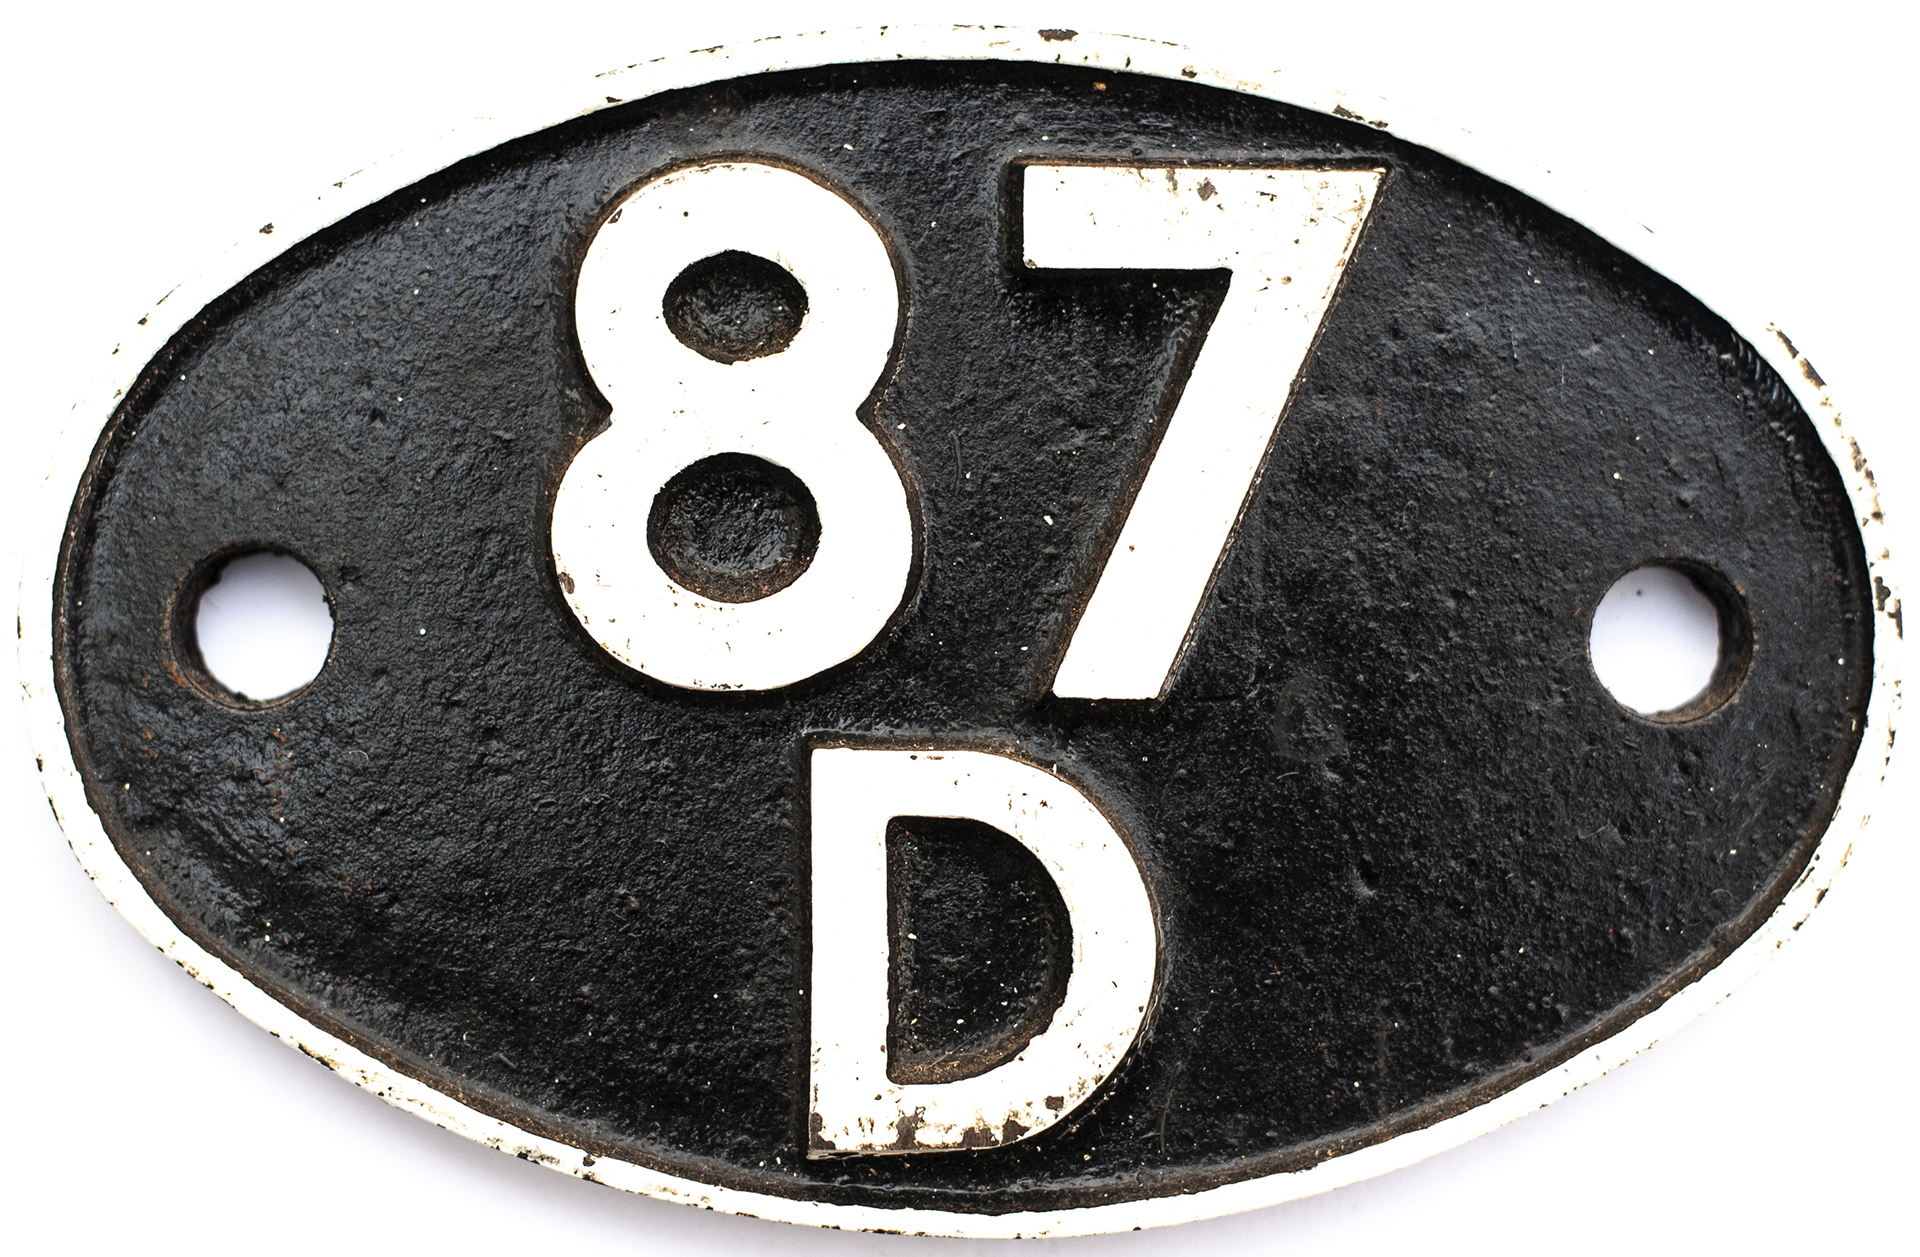 Shedplate 87D Swansea East Dock 1950-1964 with sub sheds Gurnos and Upper Bank 1959–1962. Face